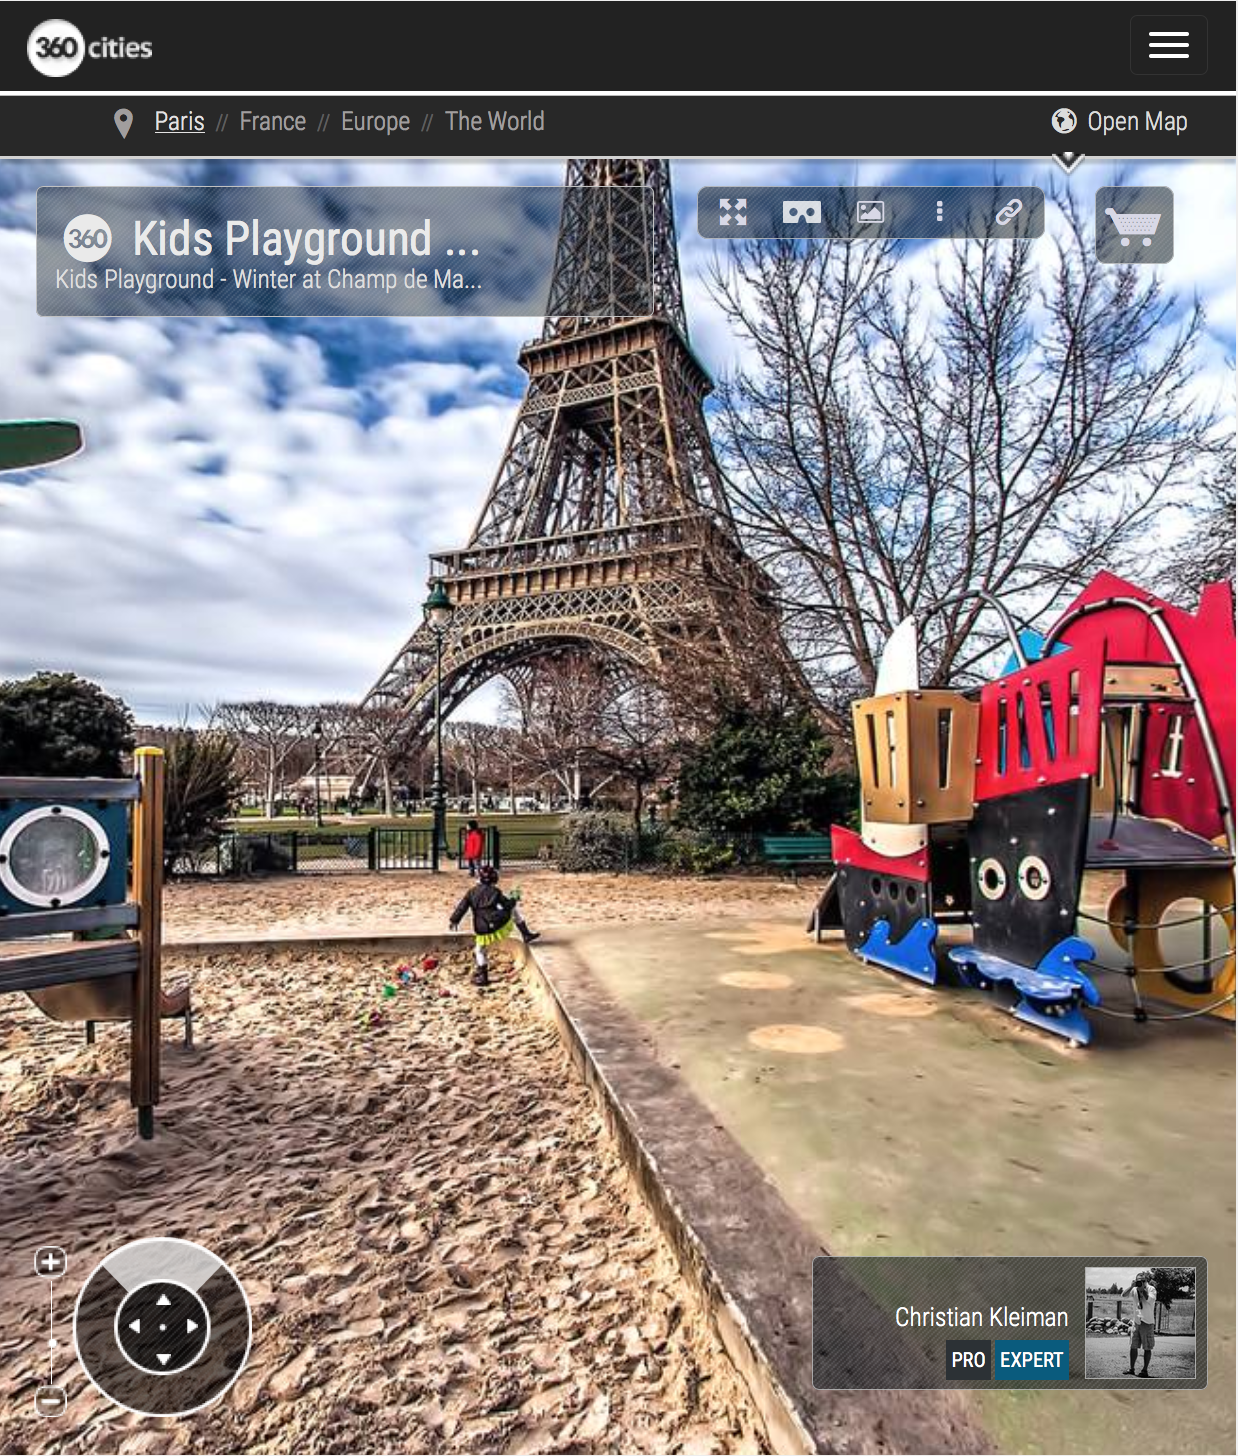 Kids Playground - Winter at Champ de Mars Garden - Creative 360 VR Spherical Panoramic Photography from emblematic places in Paris by © Christian Kleiman